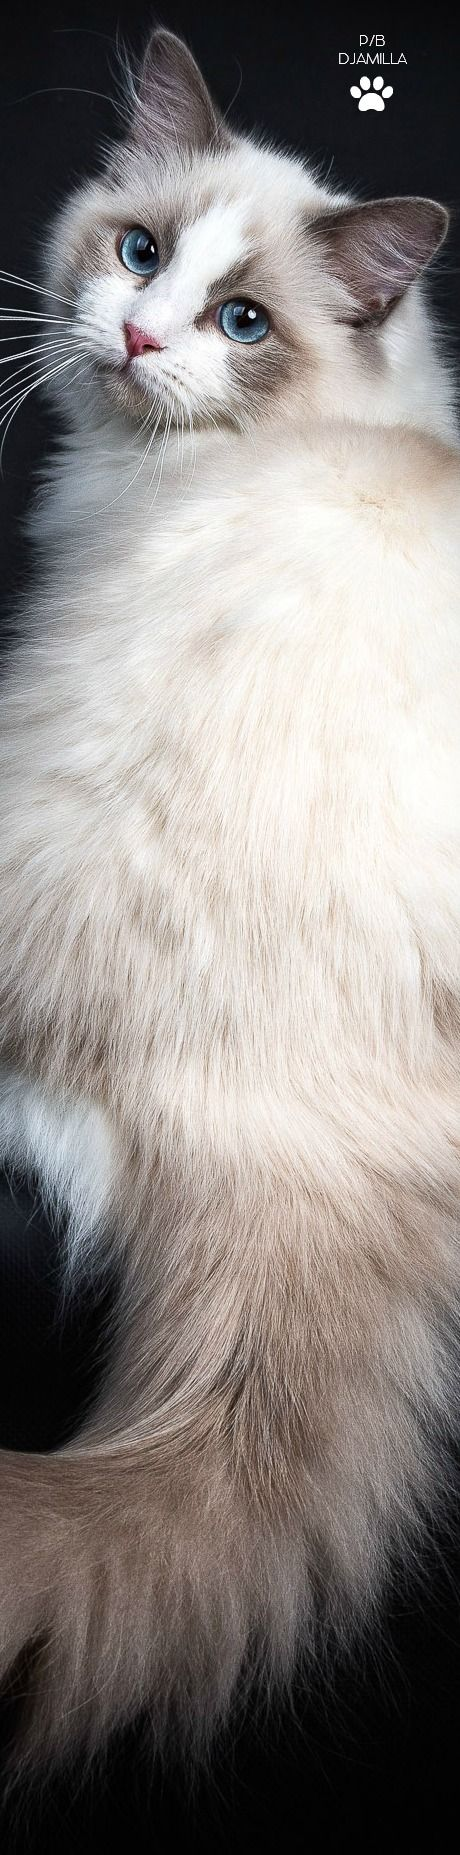 Ragdoll Cat - Tap the pin for the most adorable pawtastic fur baby apparel! You'll love the dog clothes and cat clothes! <3 Visit our site now!